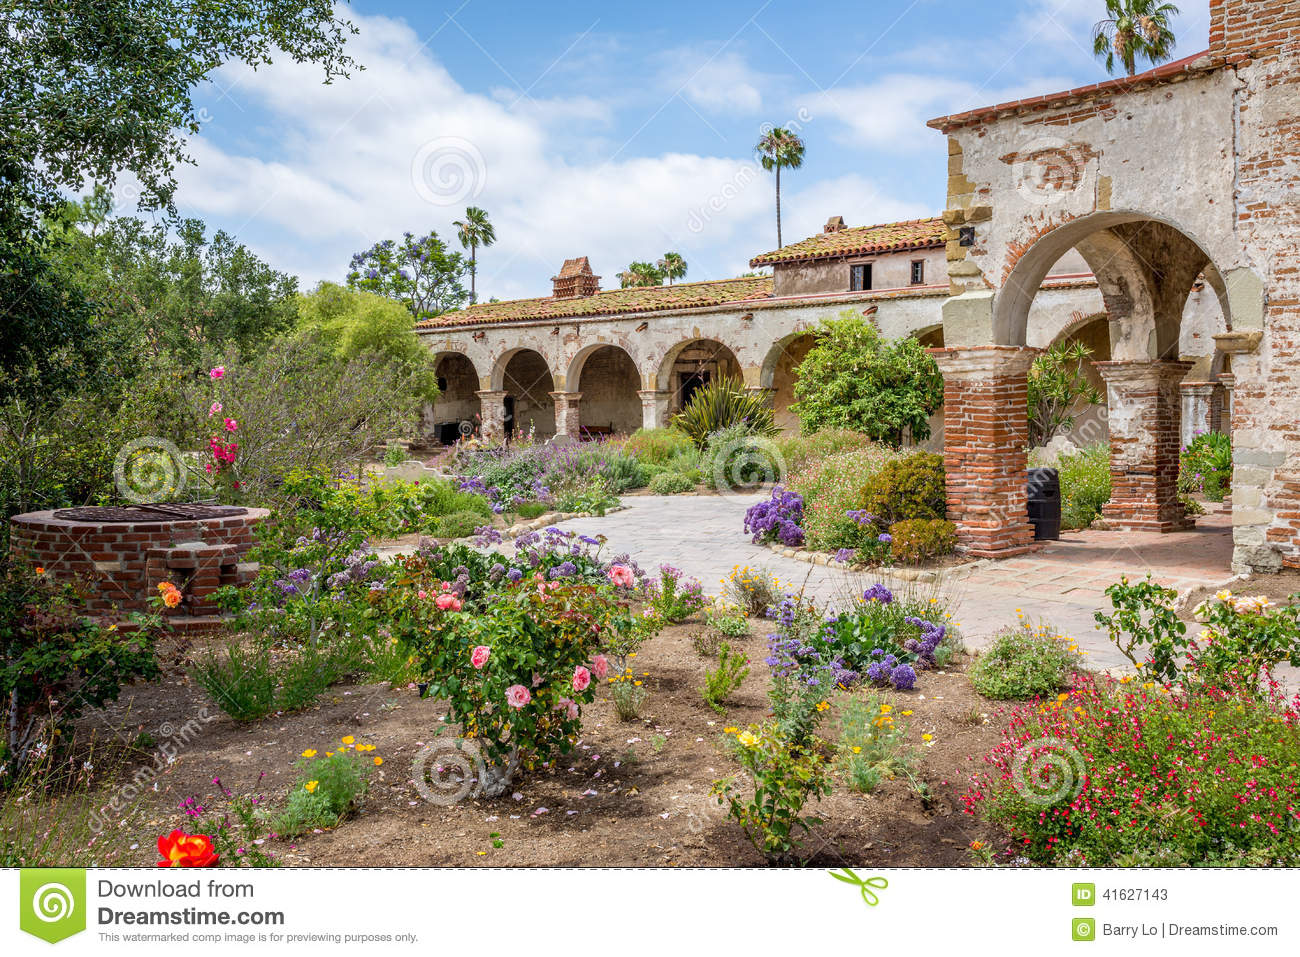 San juan capistrano garden tour garden ftempo for St patrick s church palm beach gardens